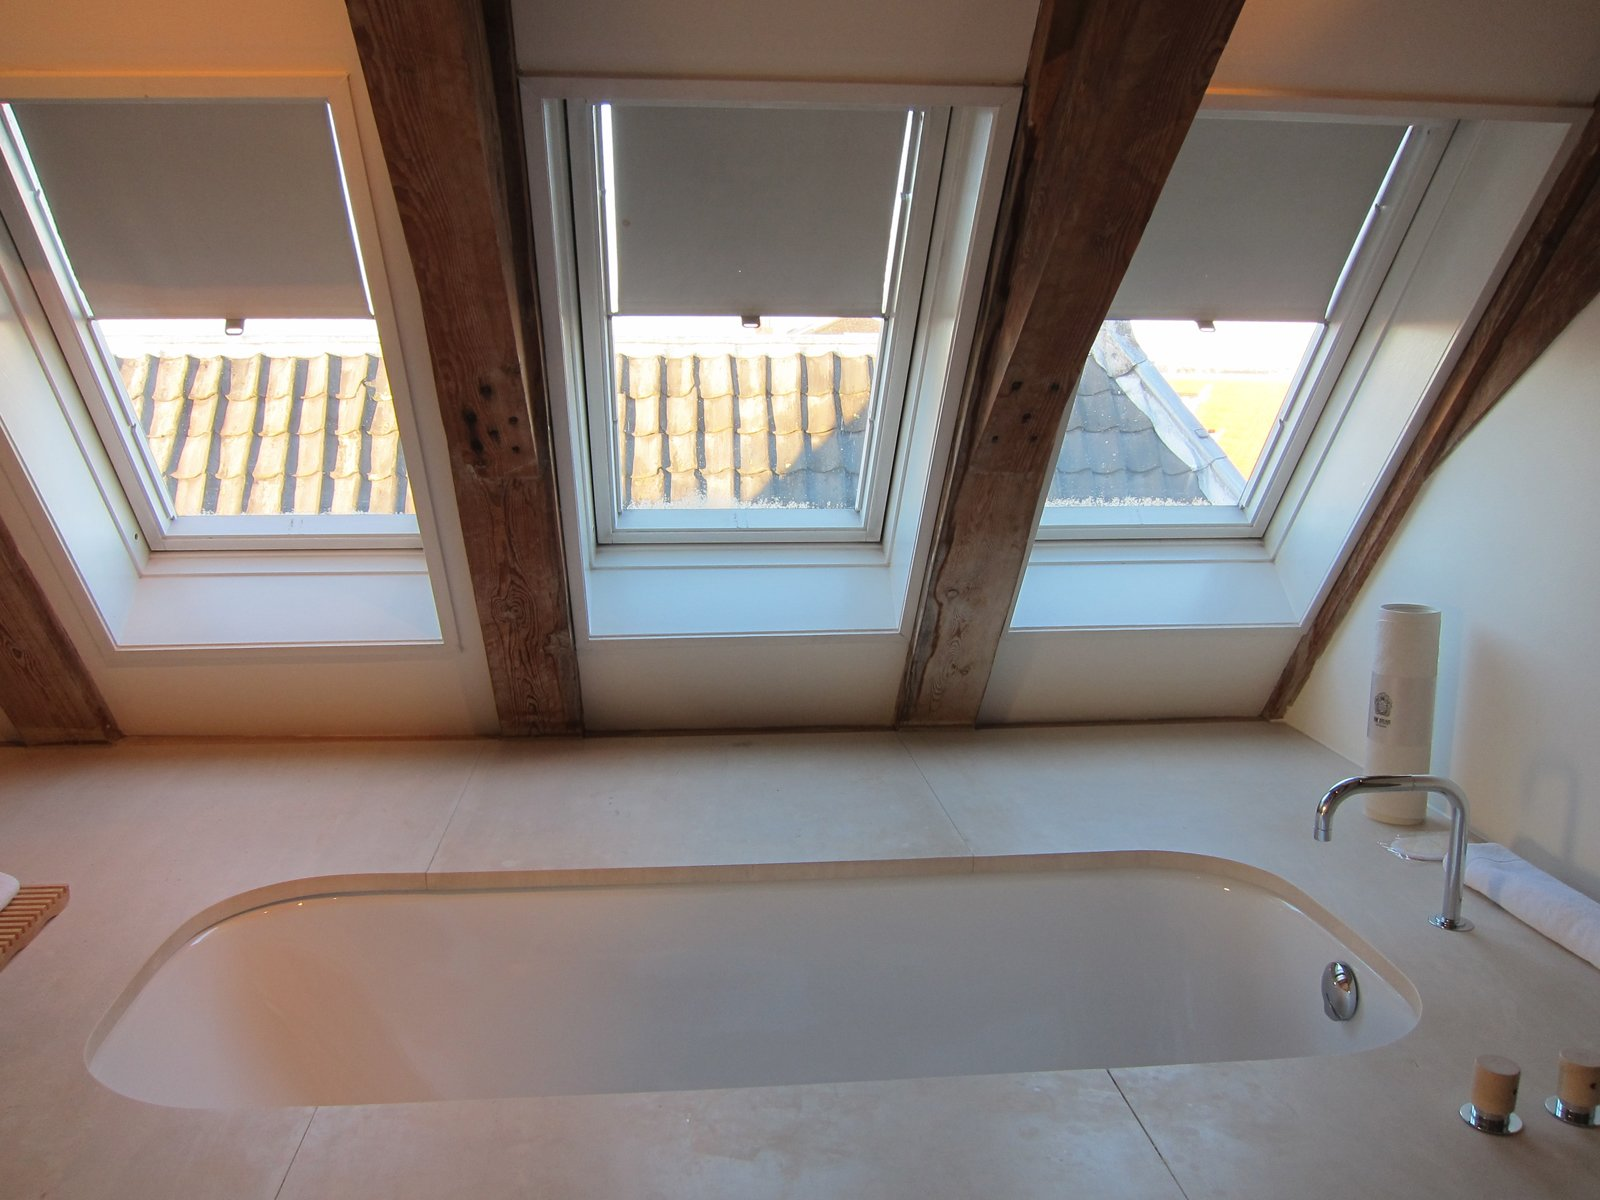 Even better—a big bathtub with views of the surrounding rooftops.  The Dylan, Amsterdam by Jaime Gillin